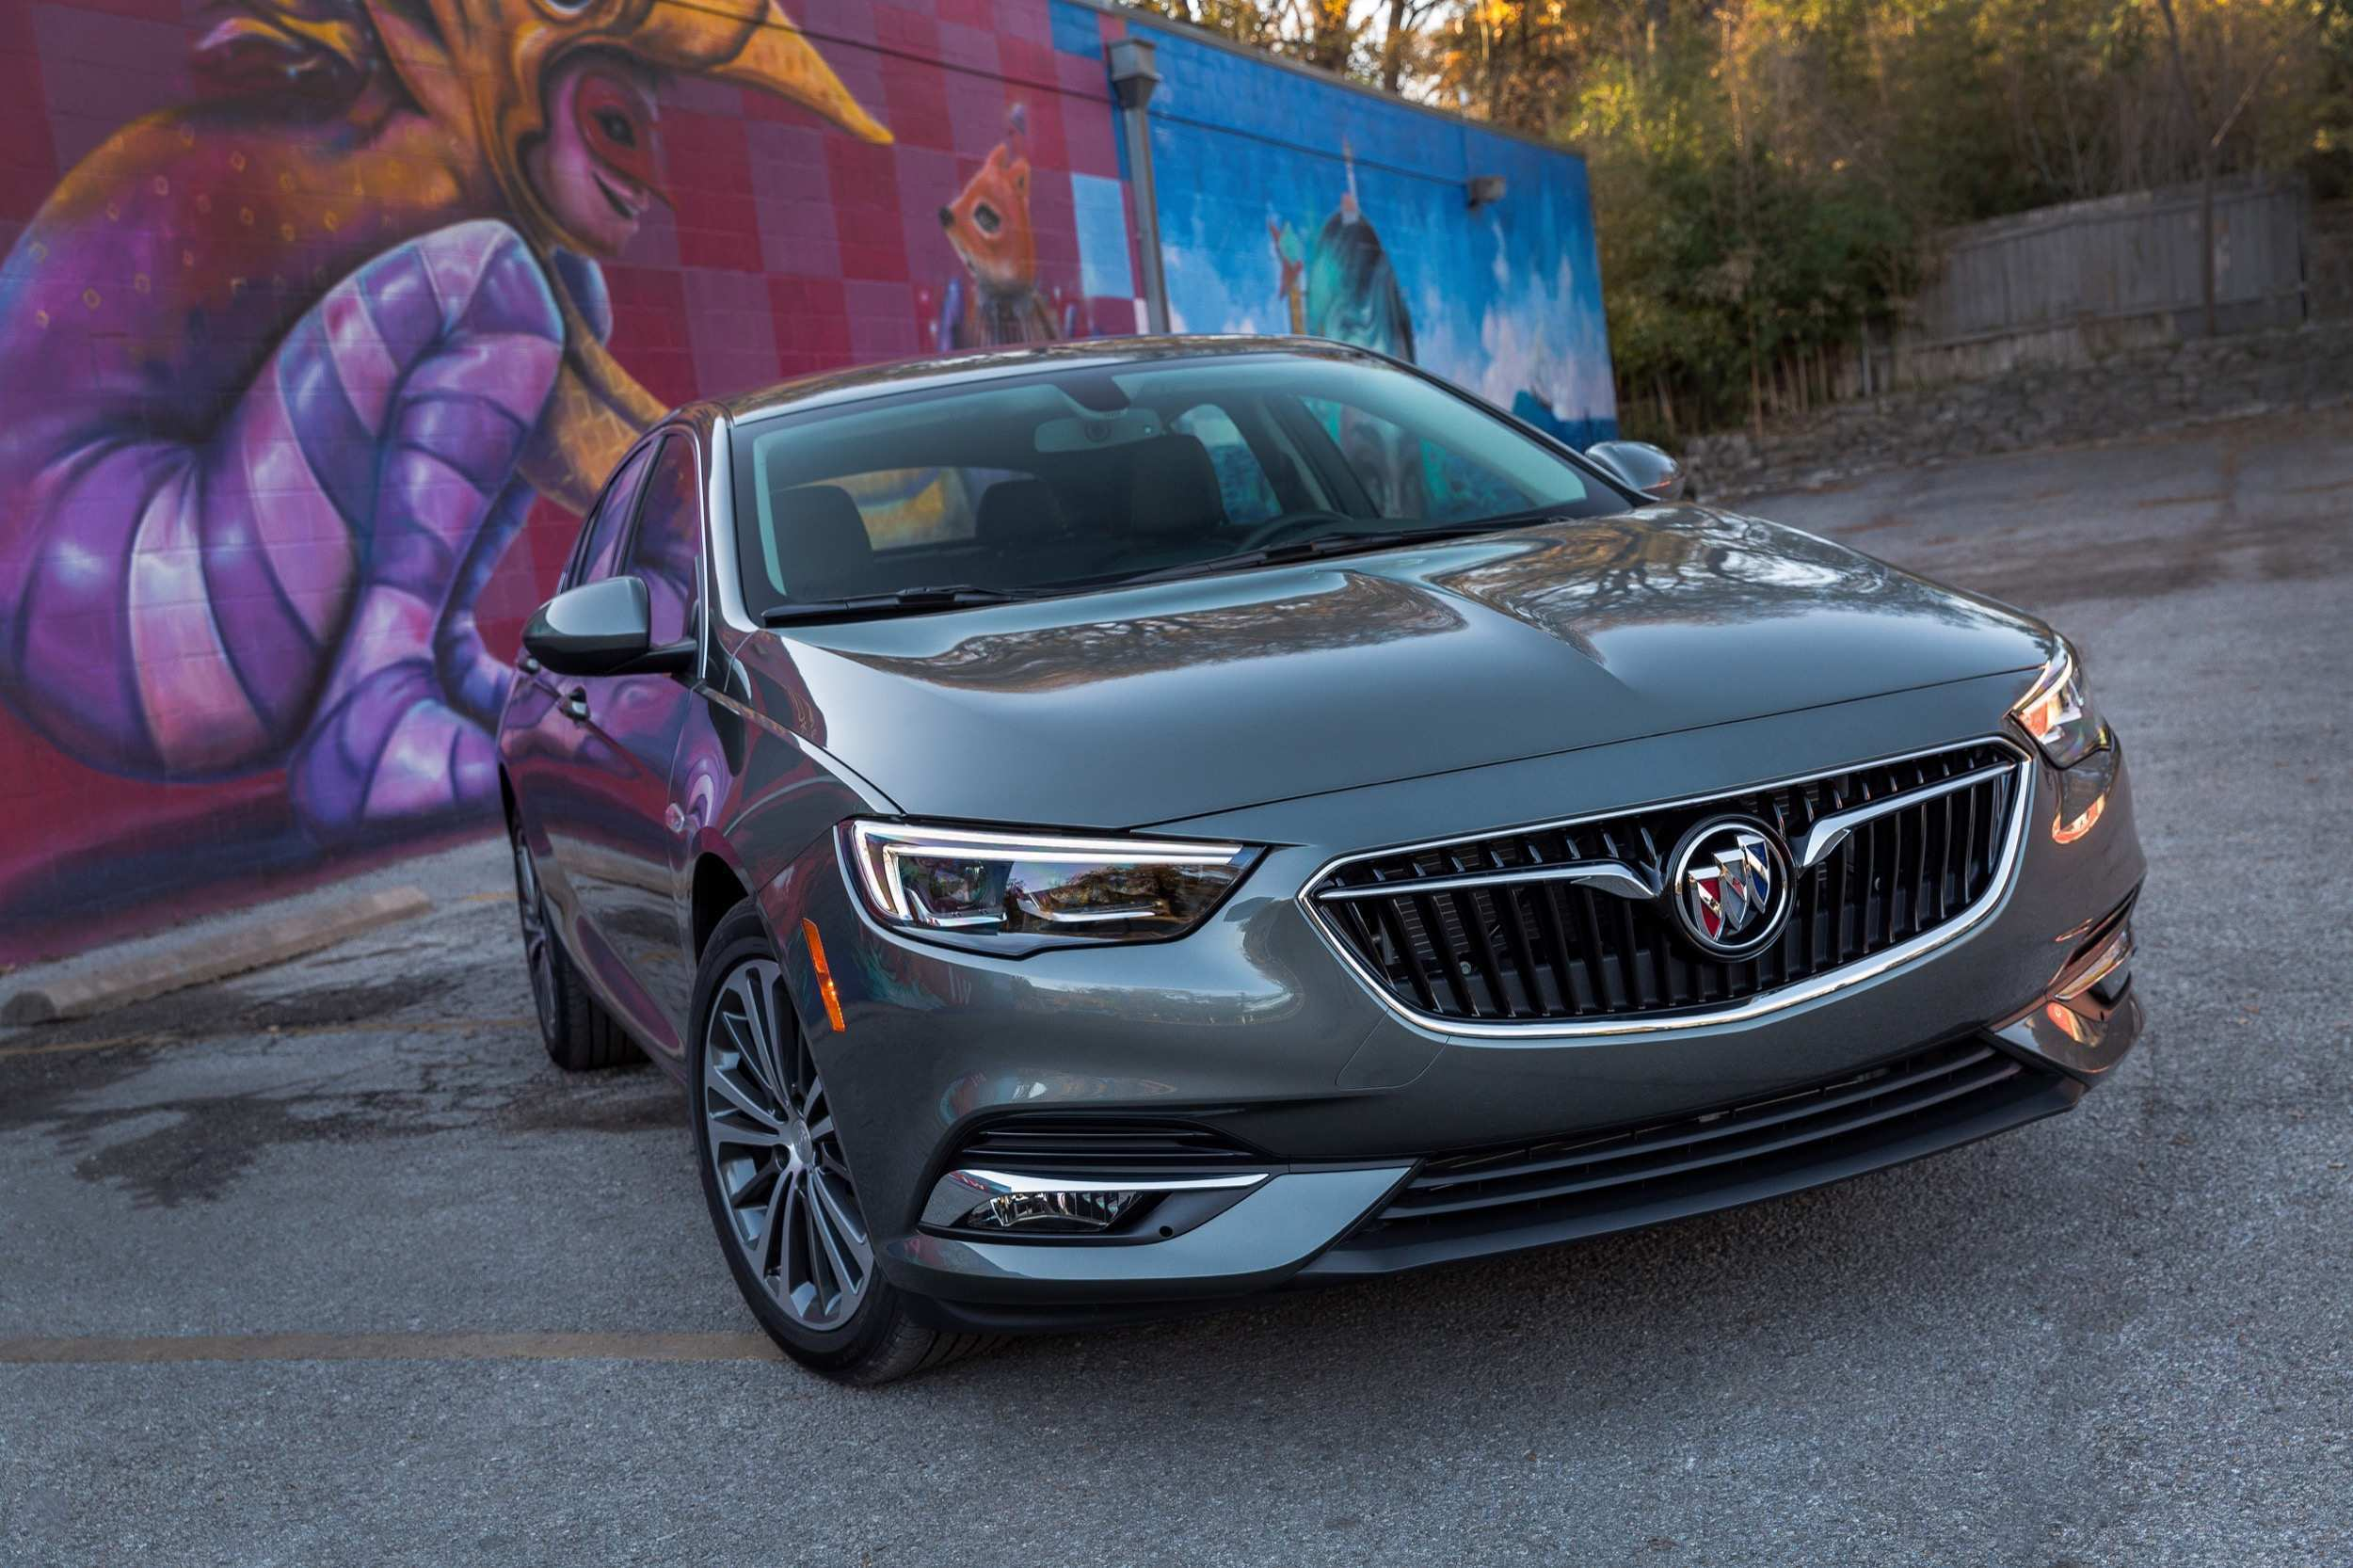 47 The 2020 Buick Regal Sportback Price Design And Review